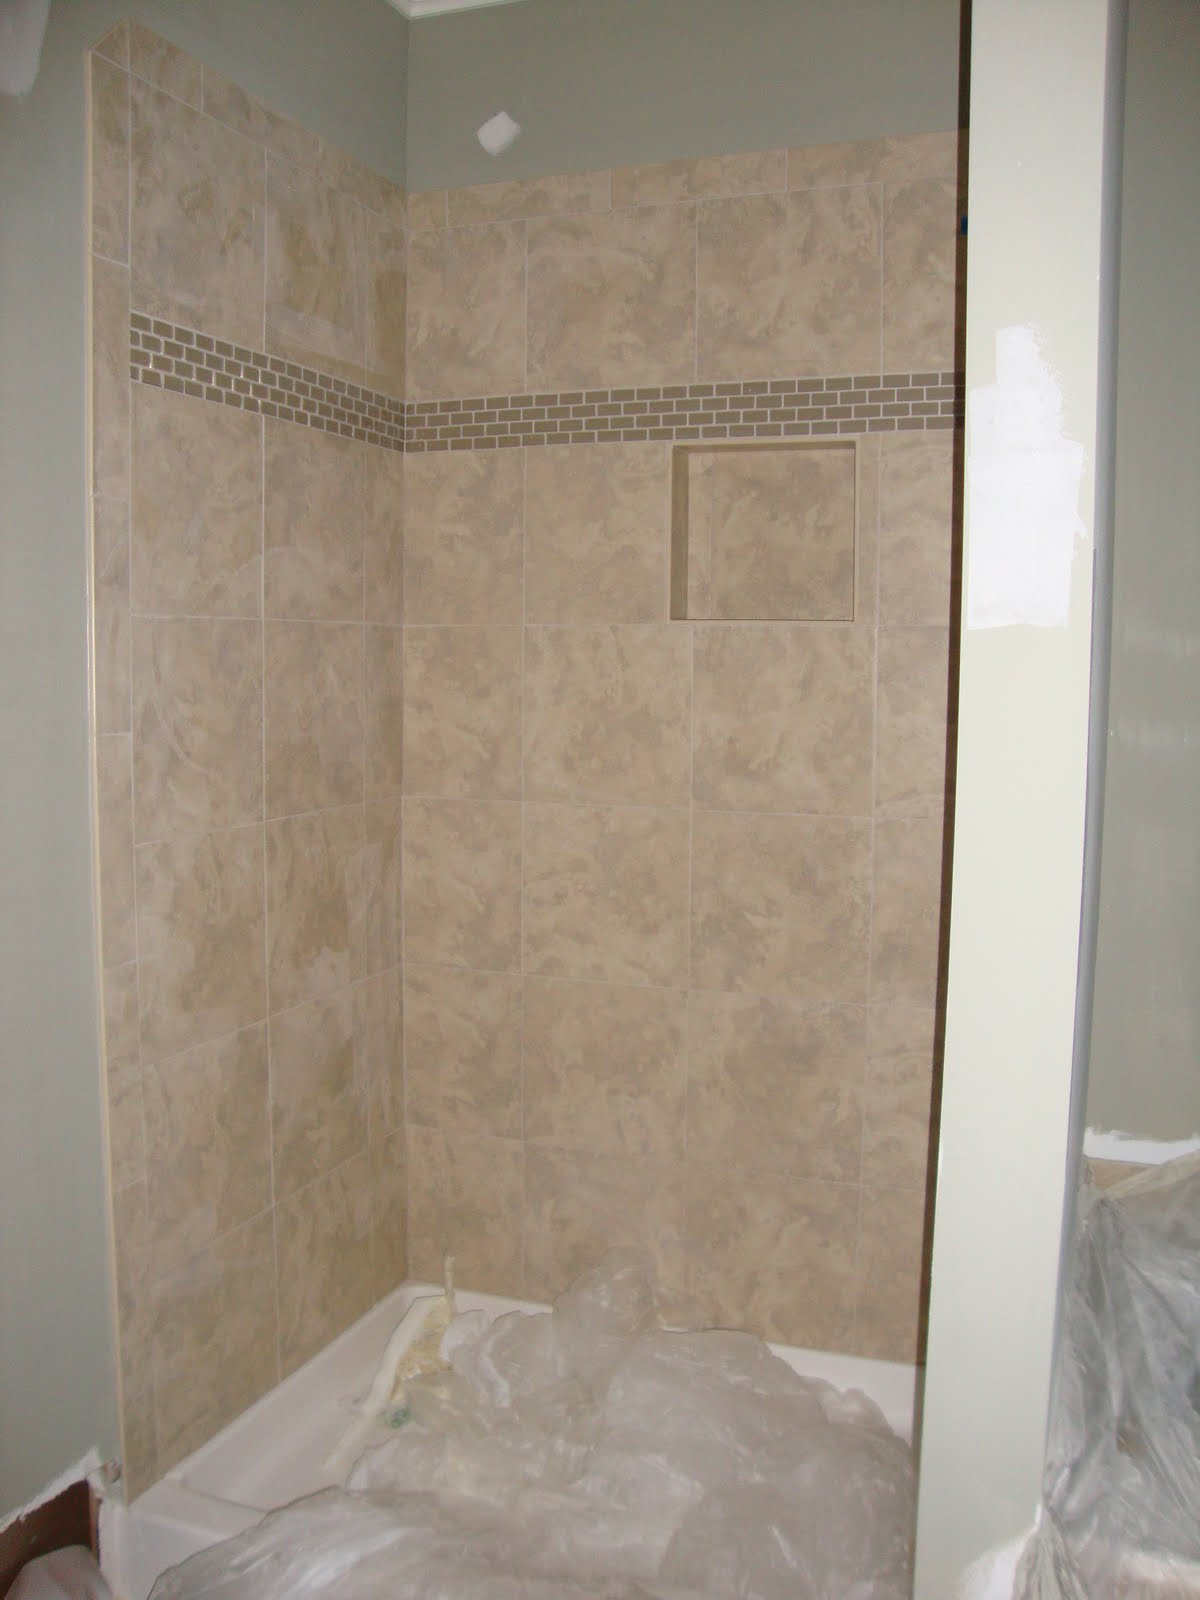 Home building project tile paint and cabinets Tile bathroom